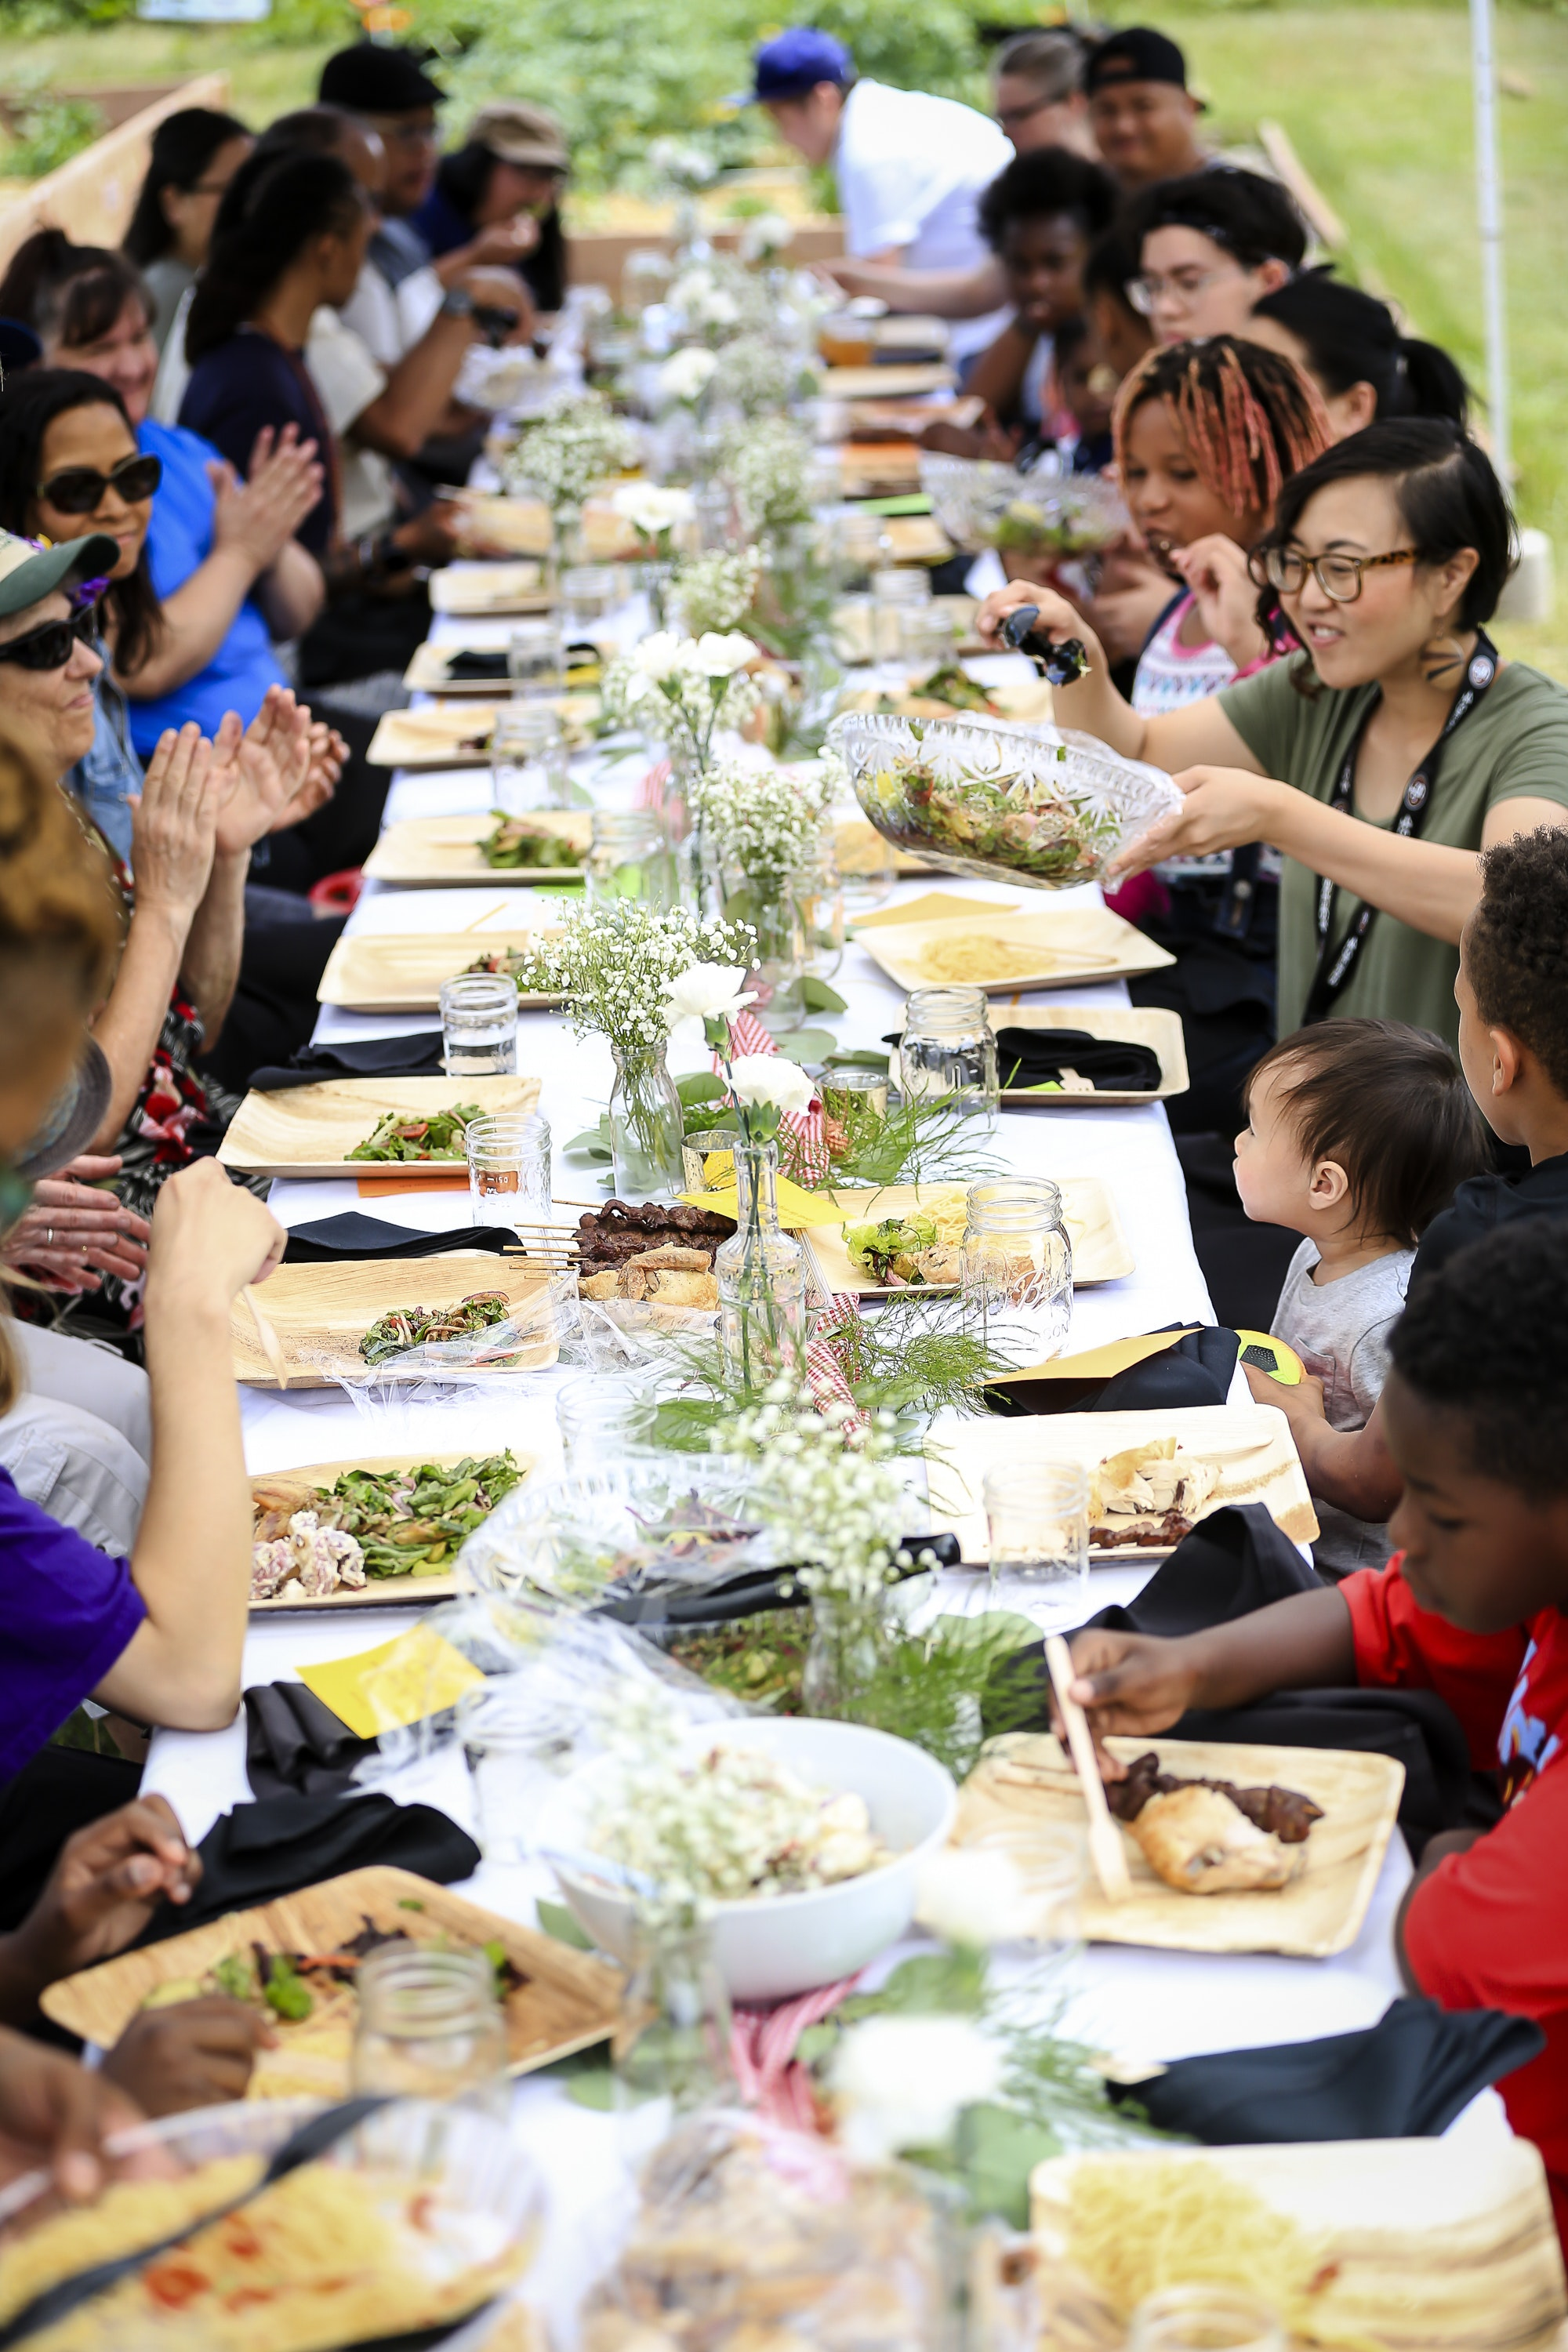 """<p><em>Kathy Mouacheupao's inclusive project """"The Gathering"""" brings together the diverse community of Rondo with The Gathering, a series of art and food events in community gardens.</em></p>"""